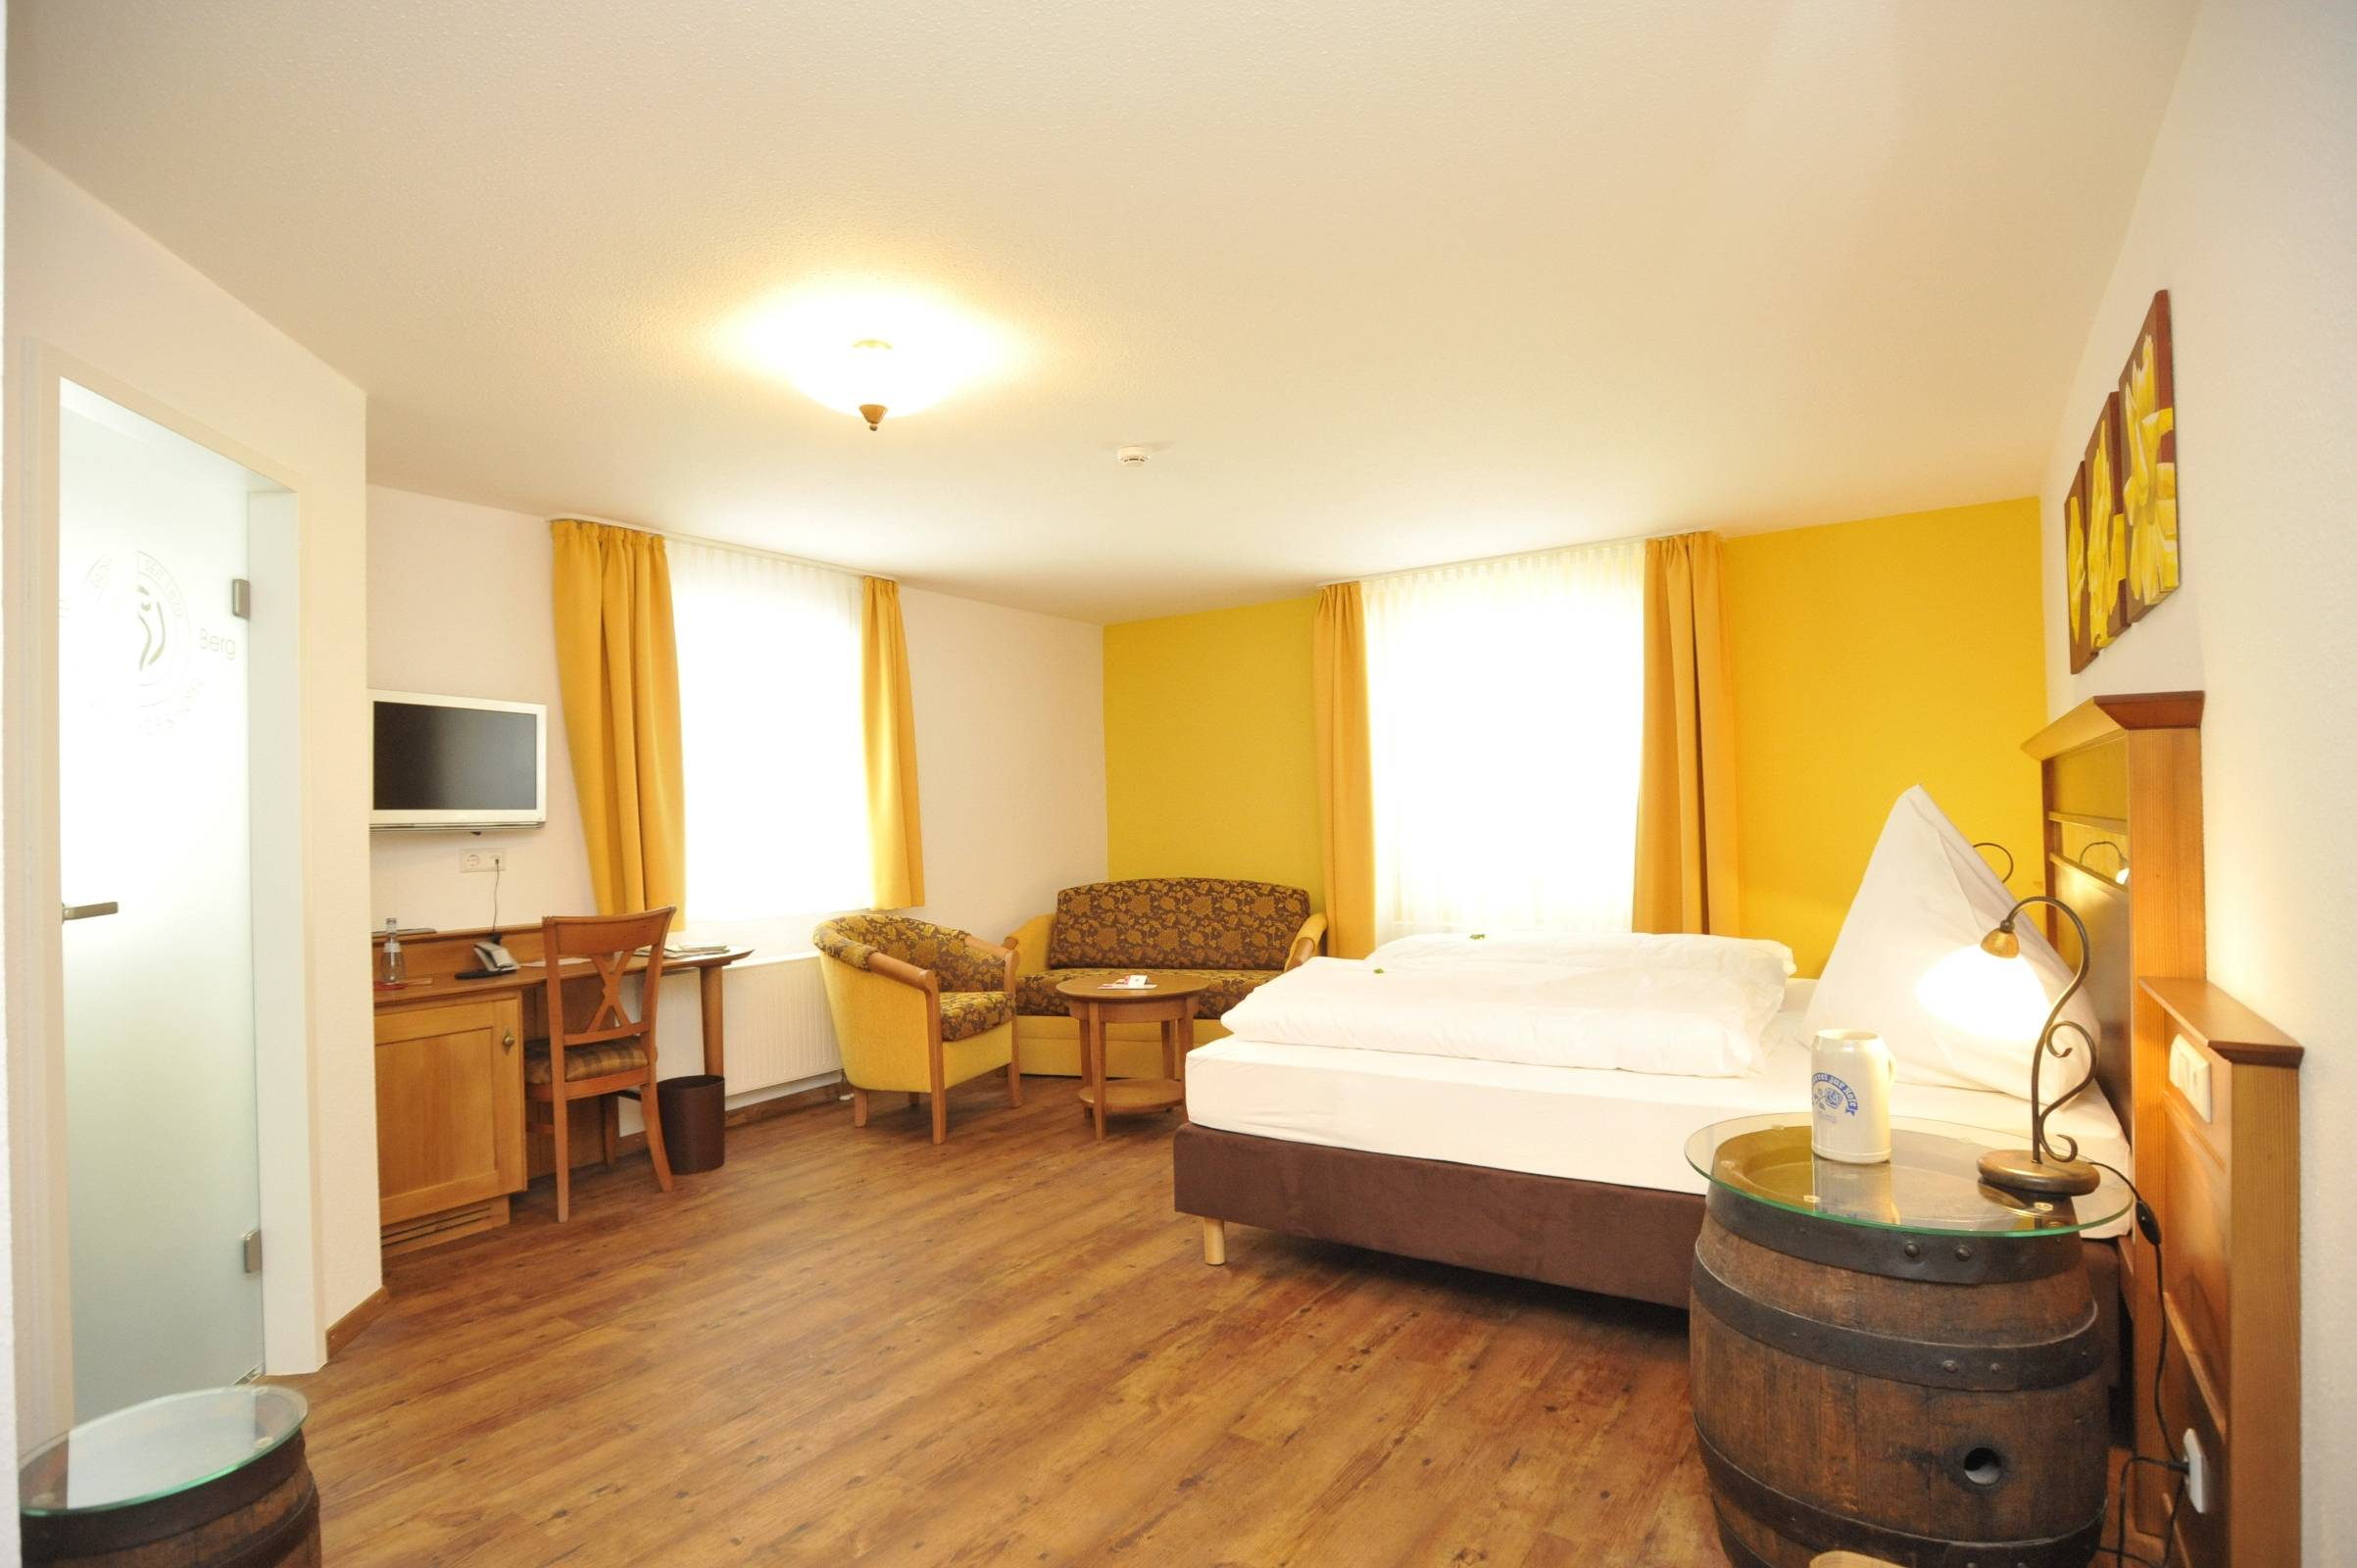 Land Gut Hotel Zur Rose Baden Wurttemberg At Hrs With Free Services